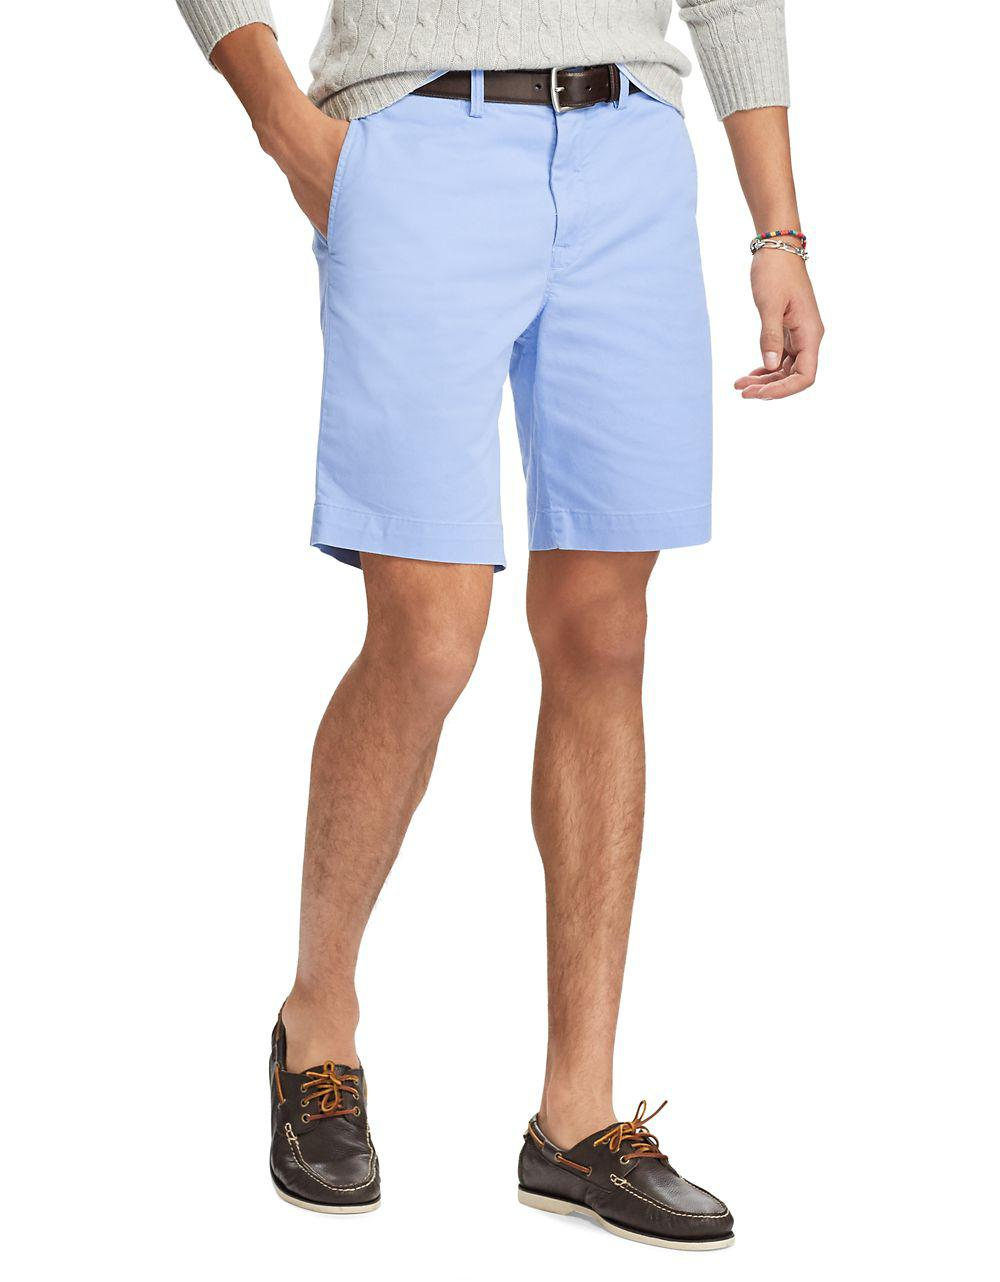 classic fit stretch shorts - Blue Polo Ralph Lauren